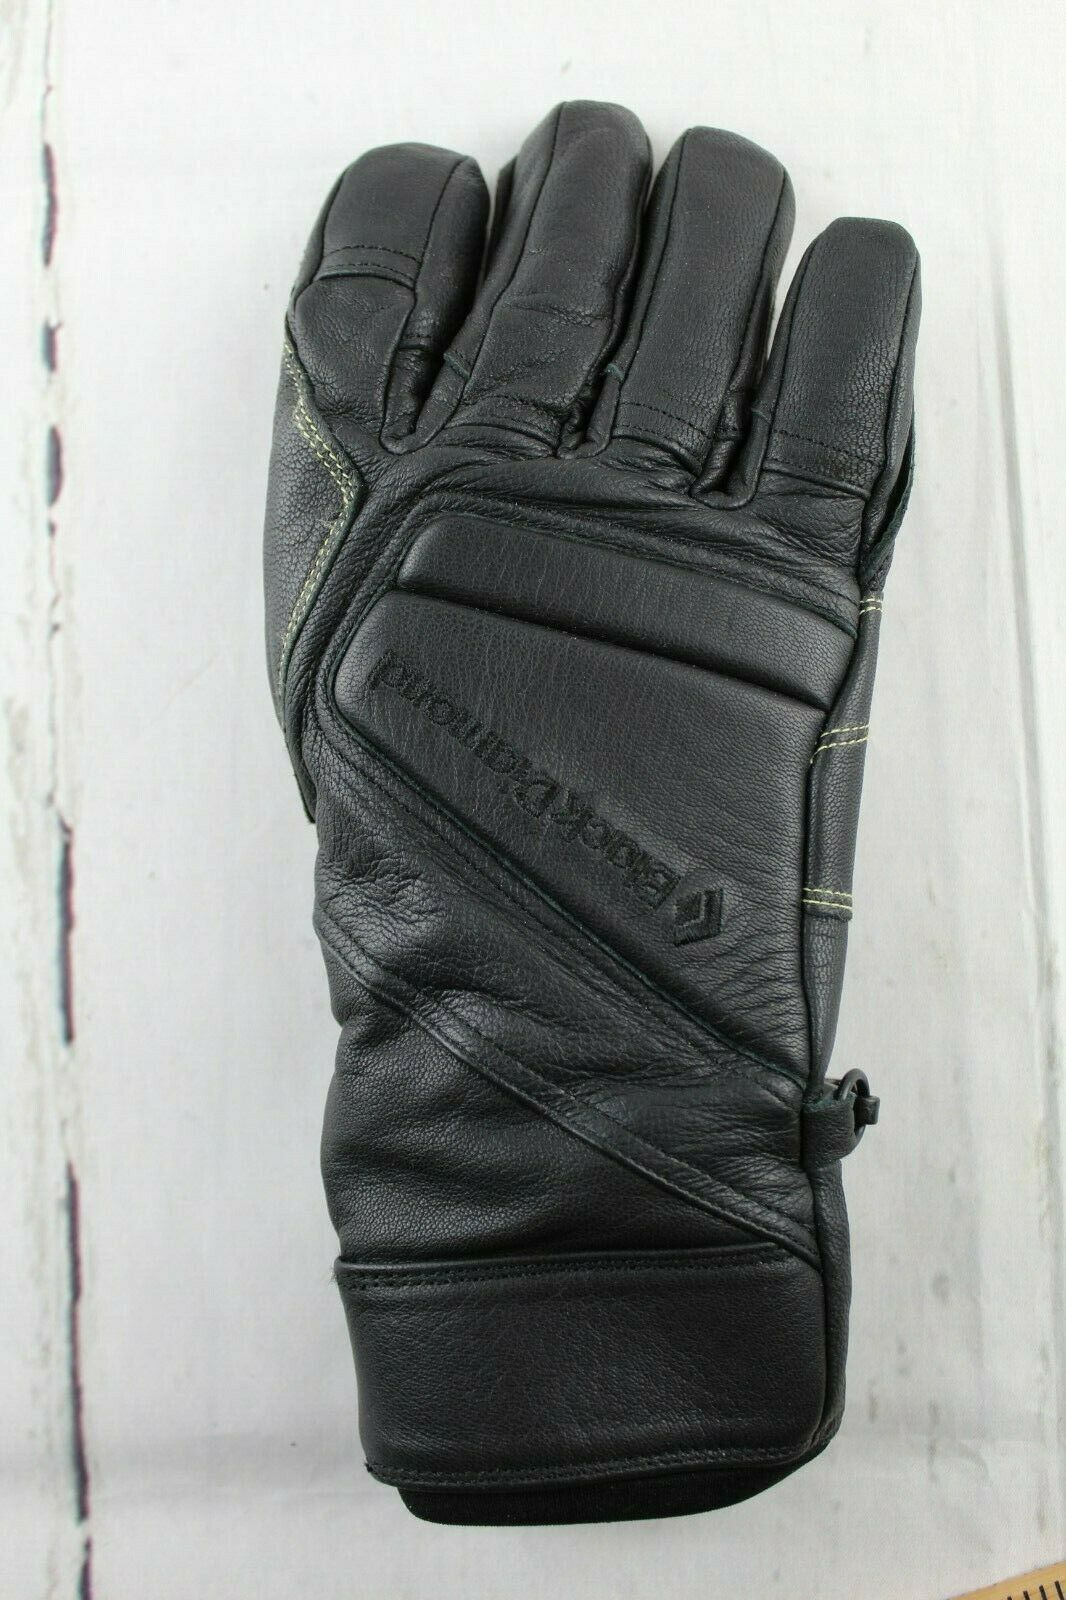 Black Diamond Leather Glove Lined Amputee RIGHT Glove Only Men's Small NEW